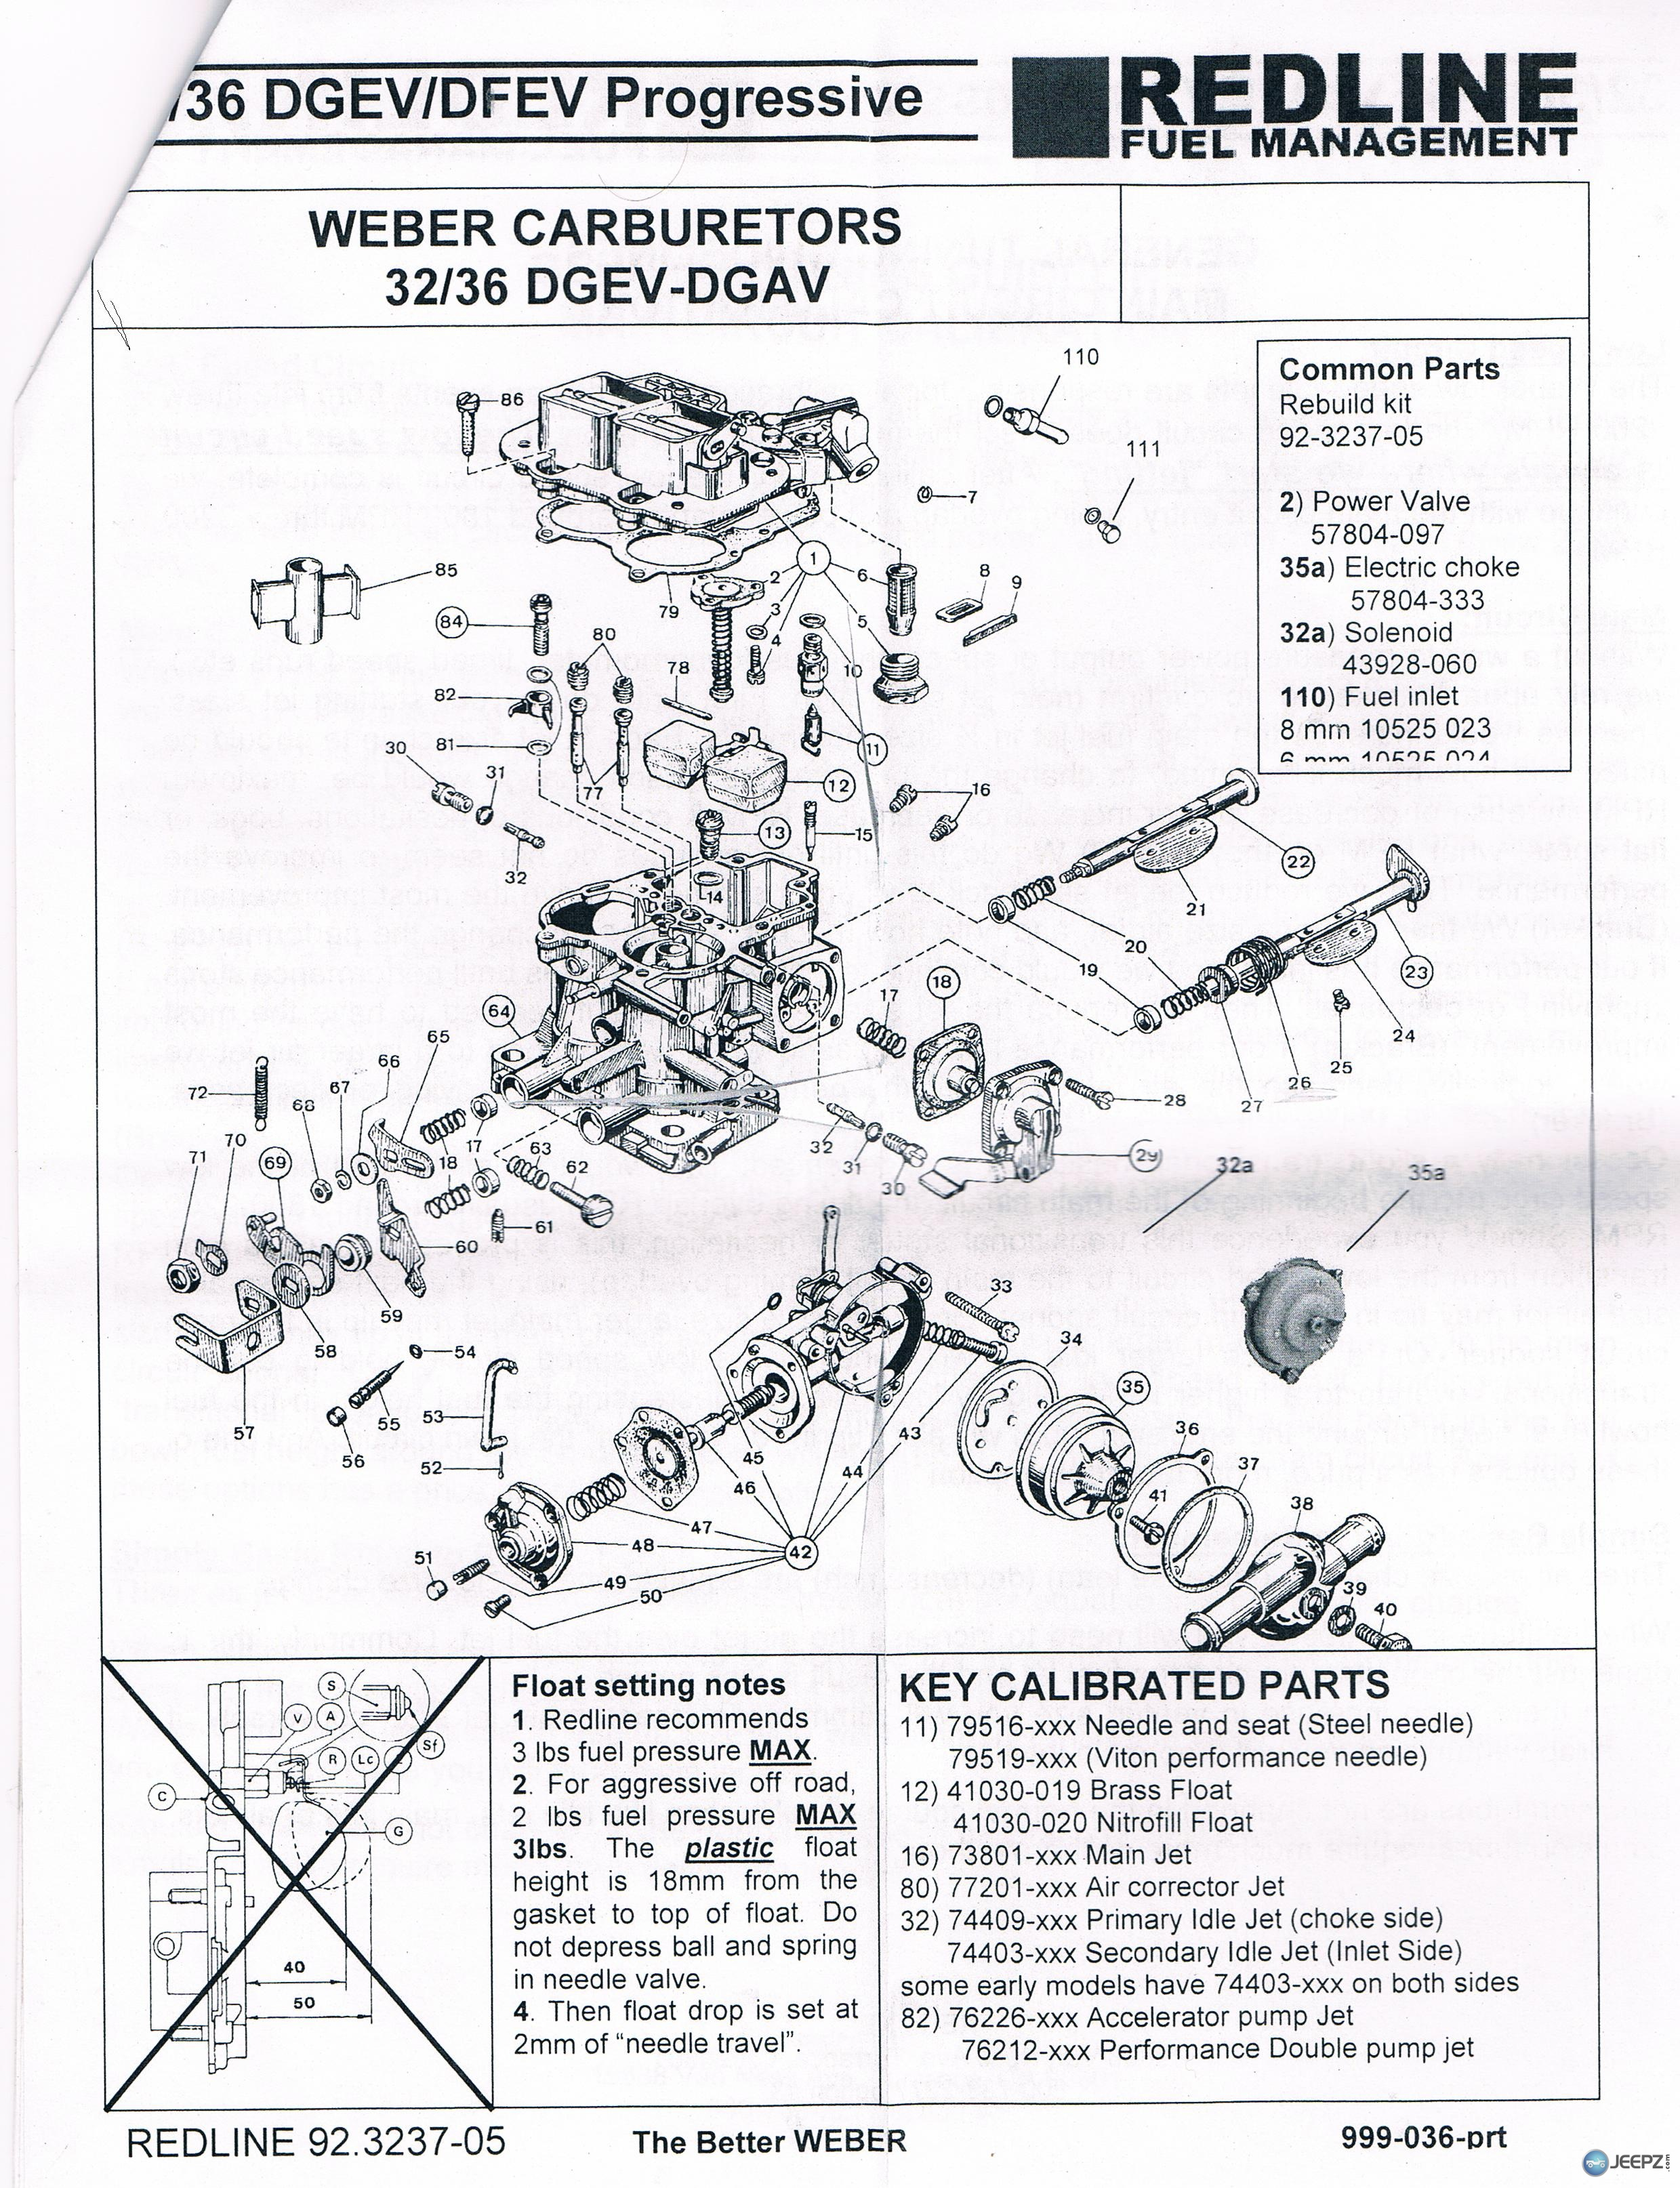 Ag Sprayer Plumbing Diagram together with The System Design Figure Out How It All Works in addition Smart Placement Home Plumbing Diagram Ideas besides Show product moreover Bell Bottom Pier Illustration. on plumbing diagrams